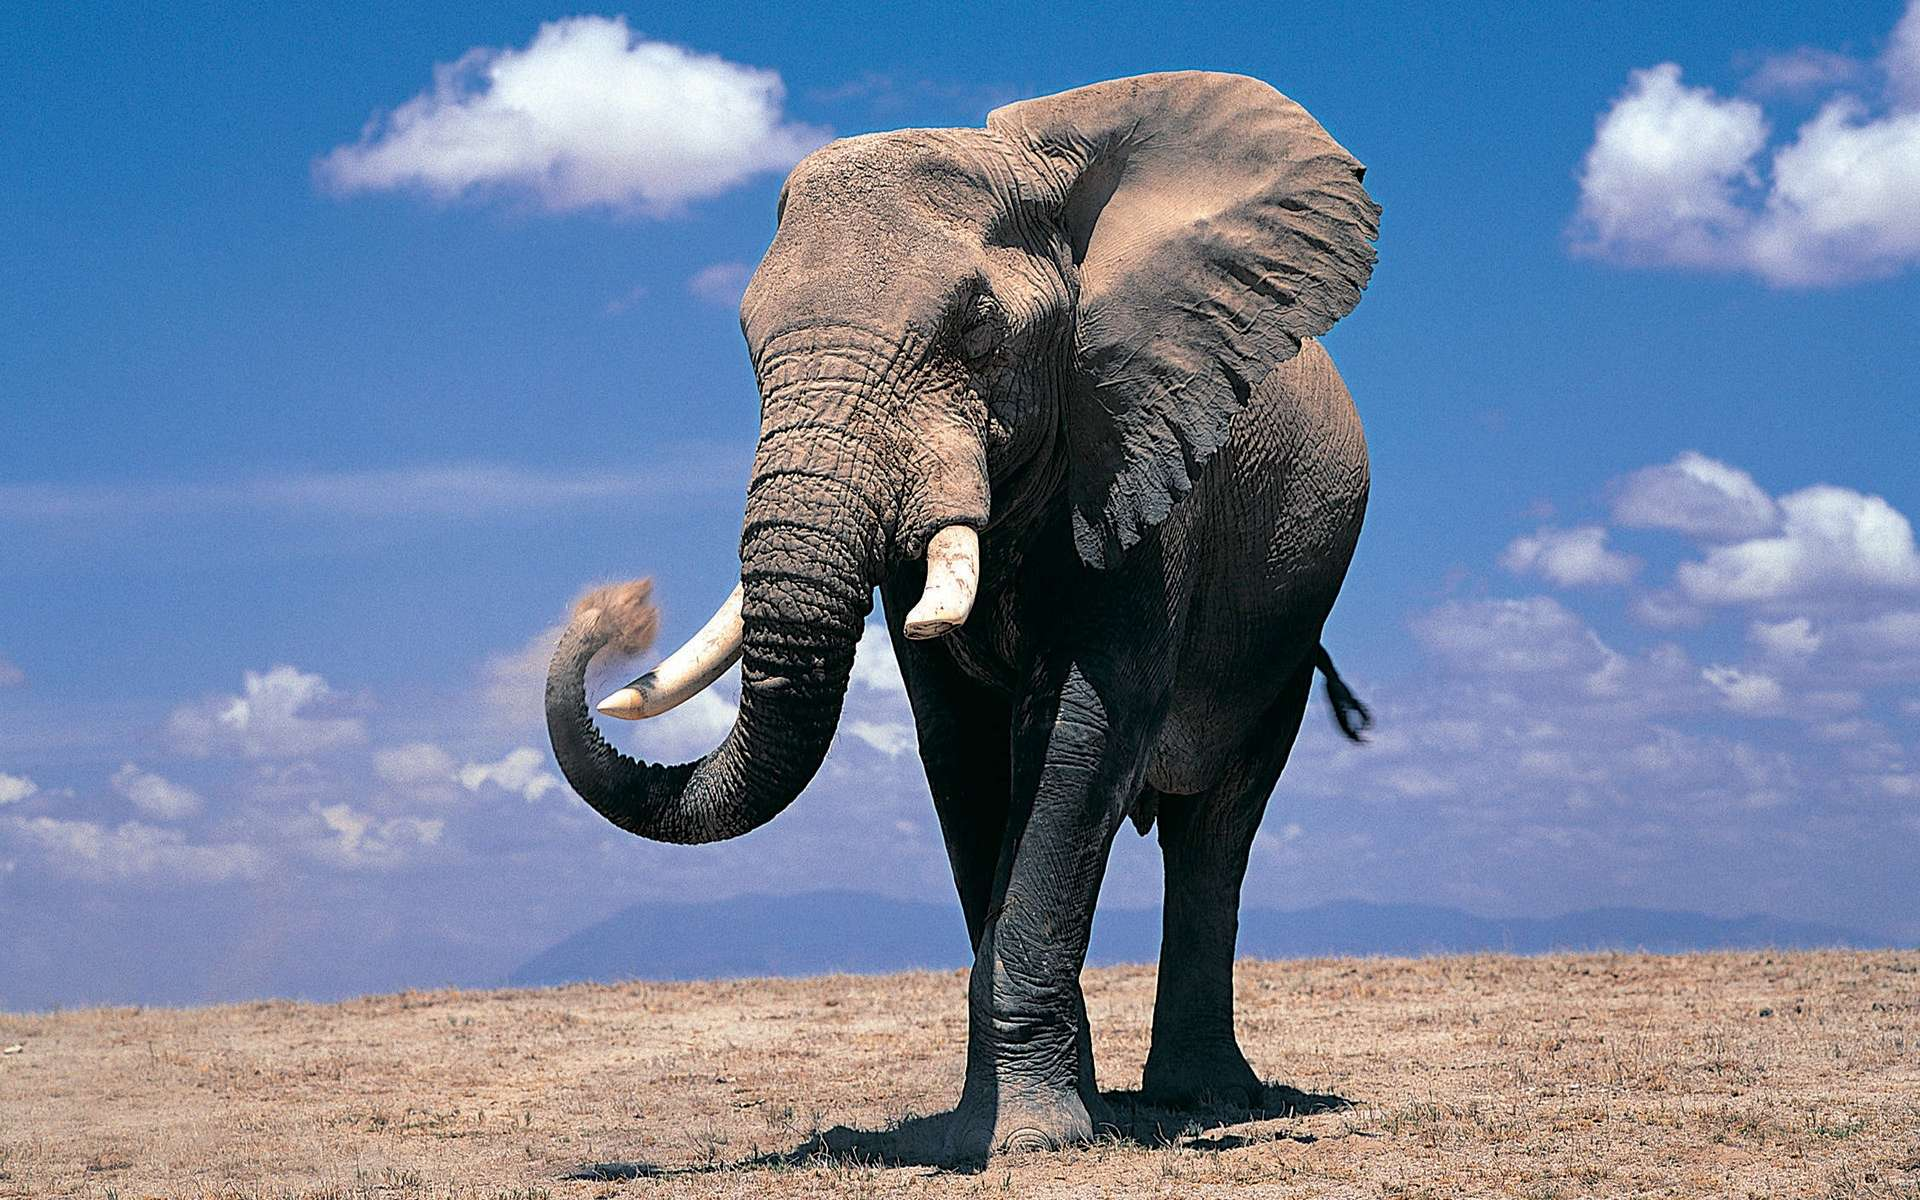 The largest elephant was an African elephant weighed around 24,000 pounds and was 13 feet tall.